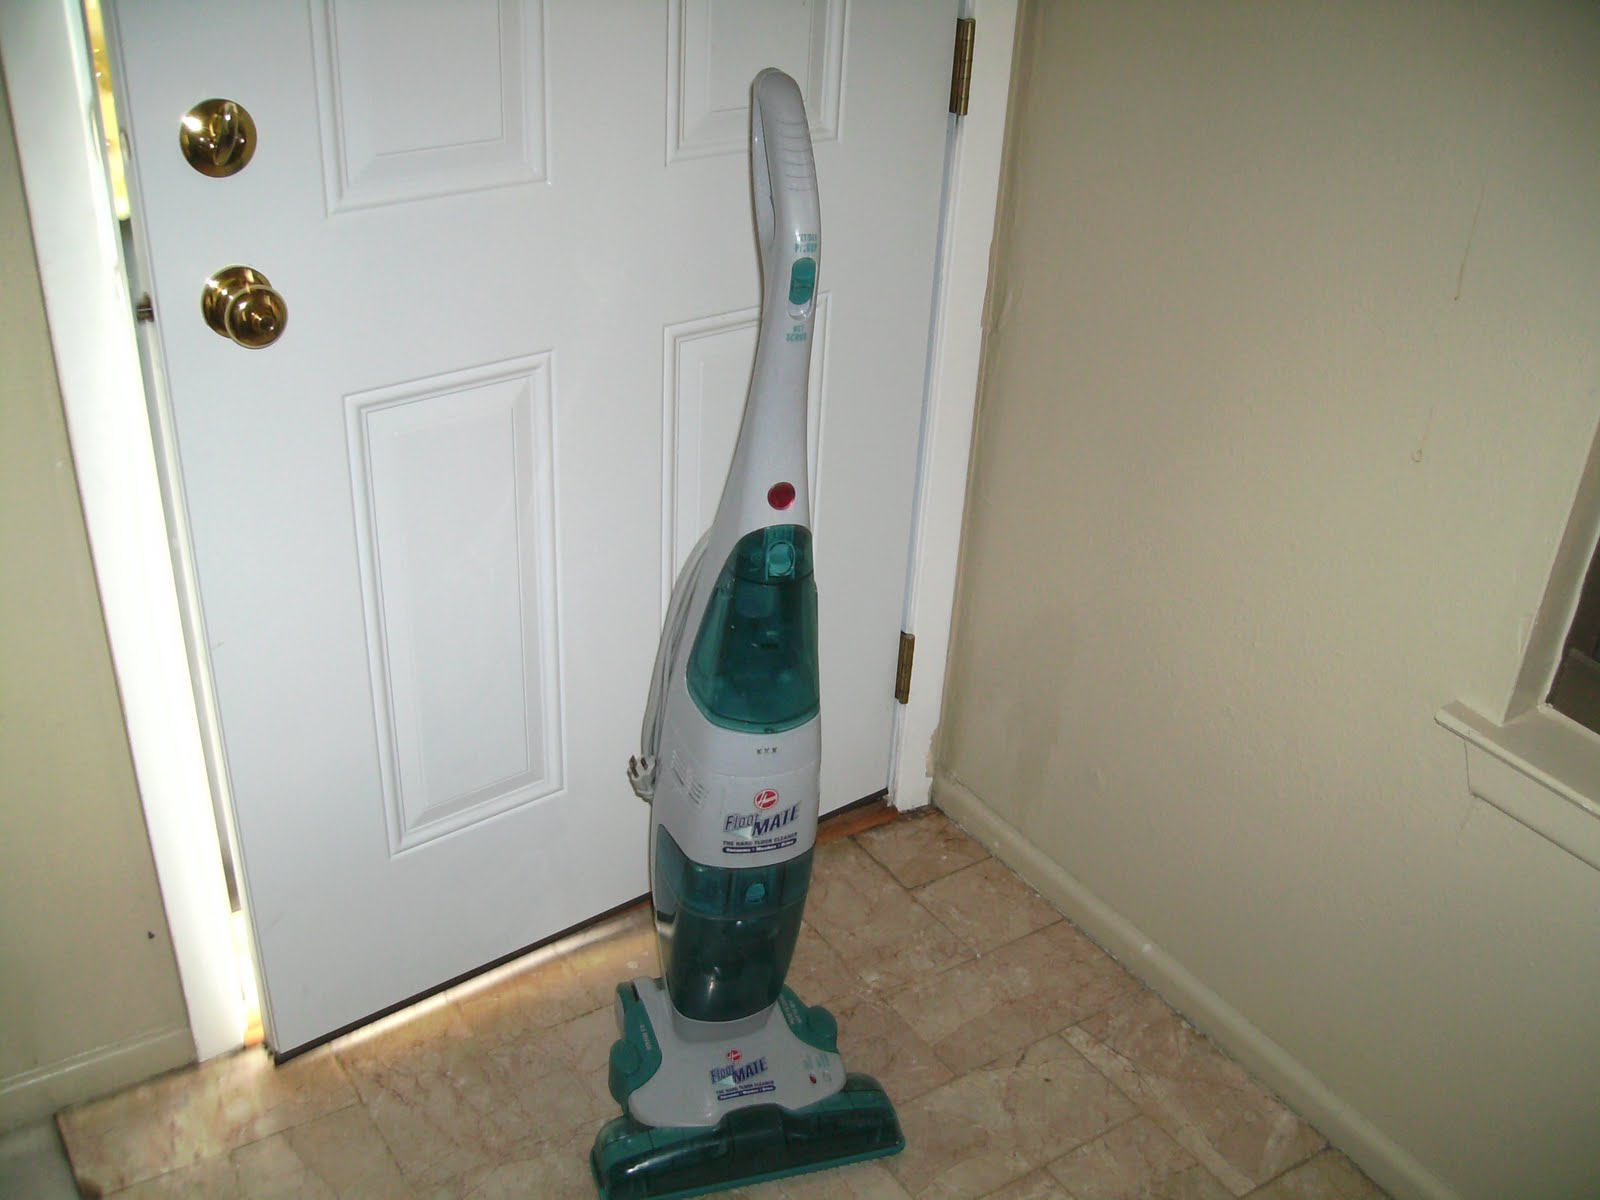 Tile floor vacuum floor a matic update hoover floormate h3000 dailygadgetfo Images